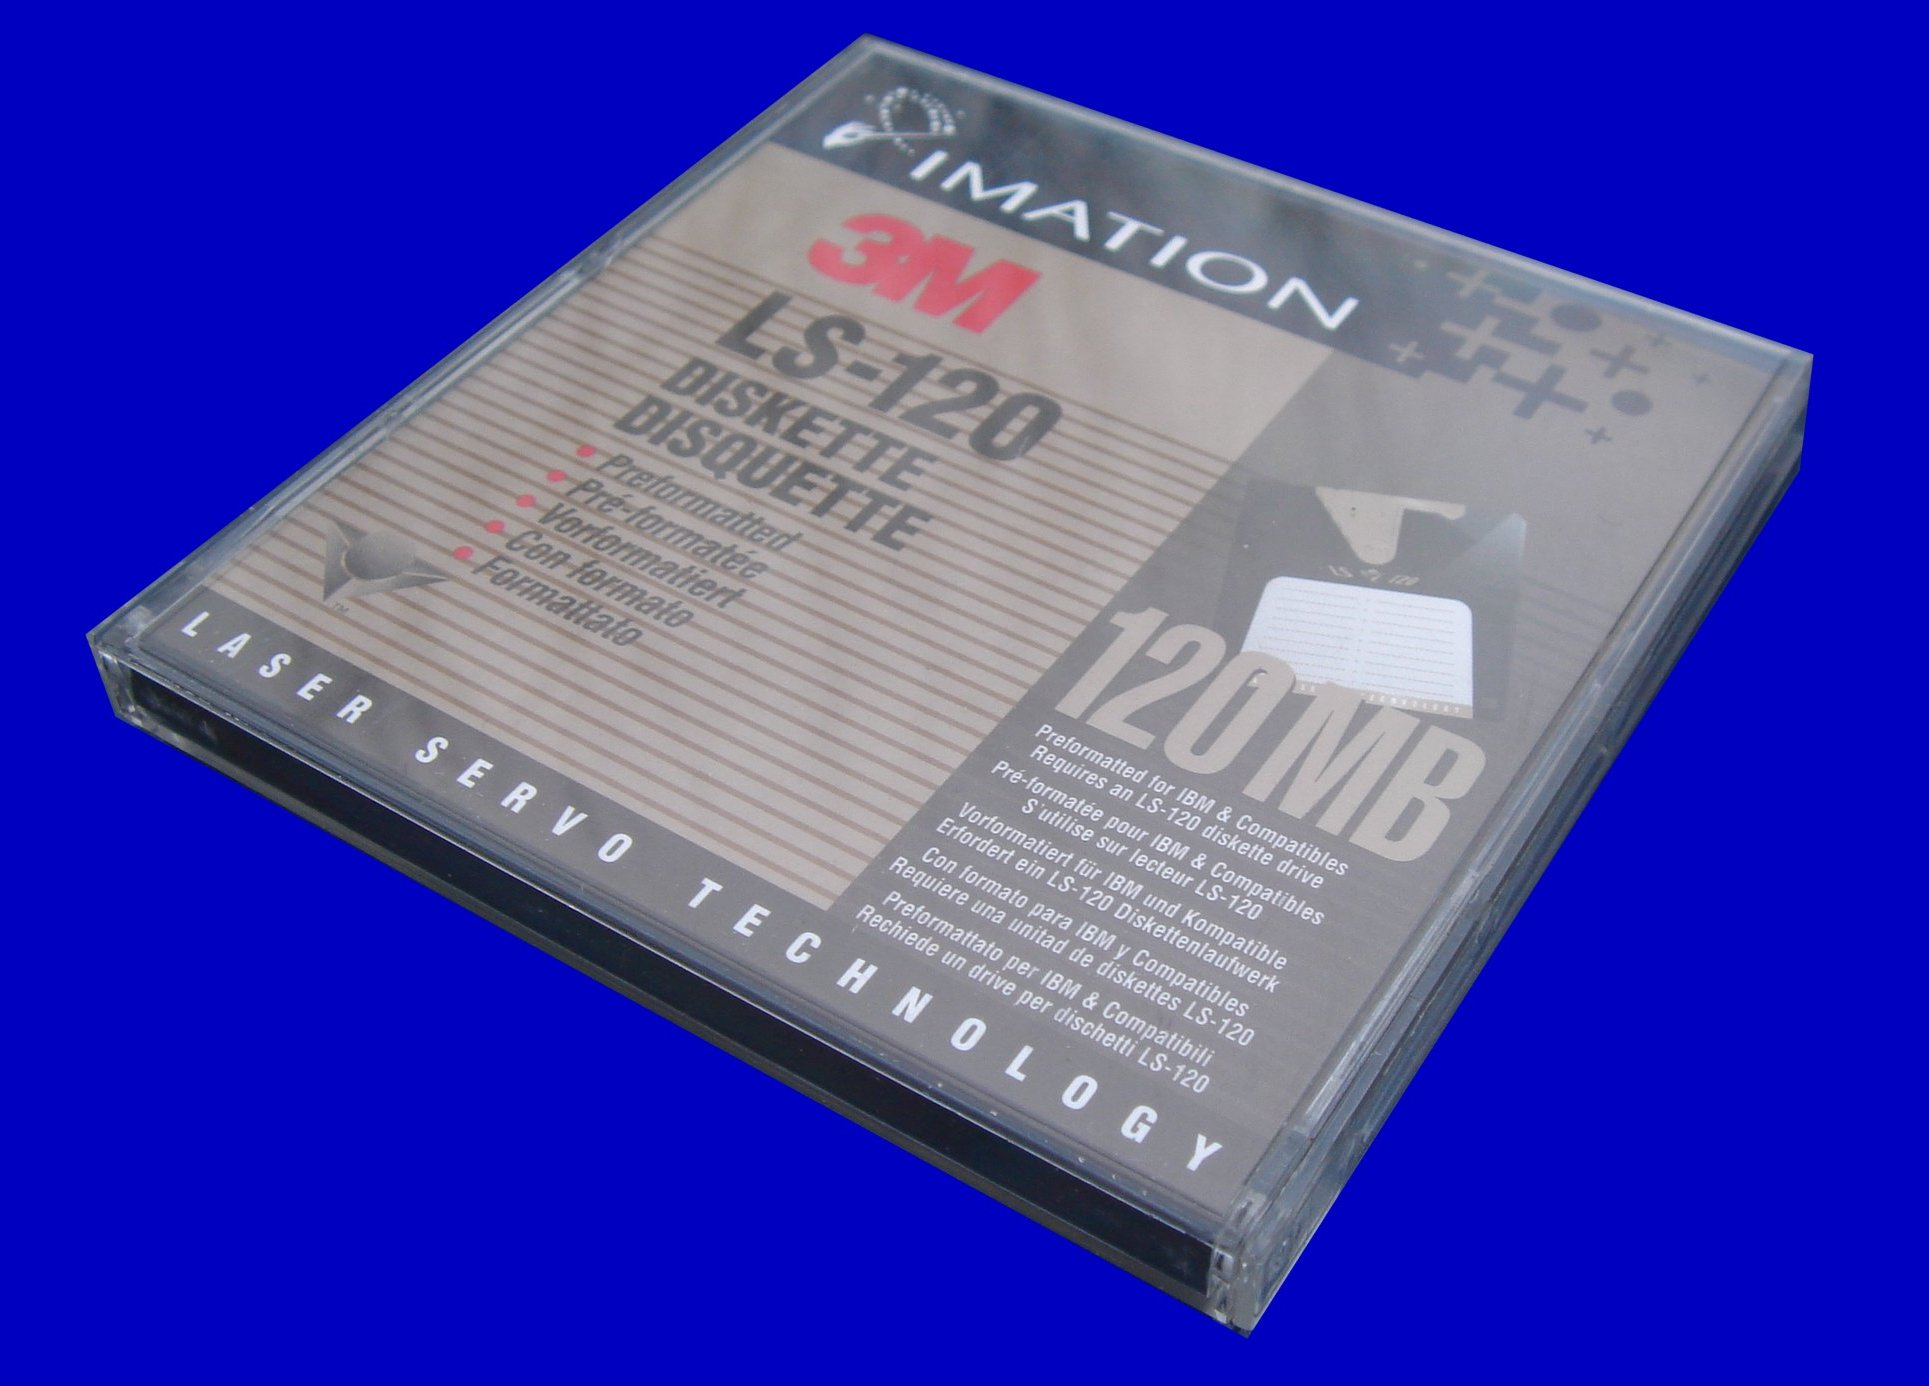 IMATION SUPERDISK 120MB DRIVERS PC